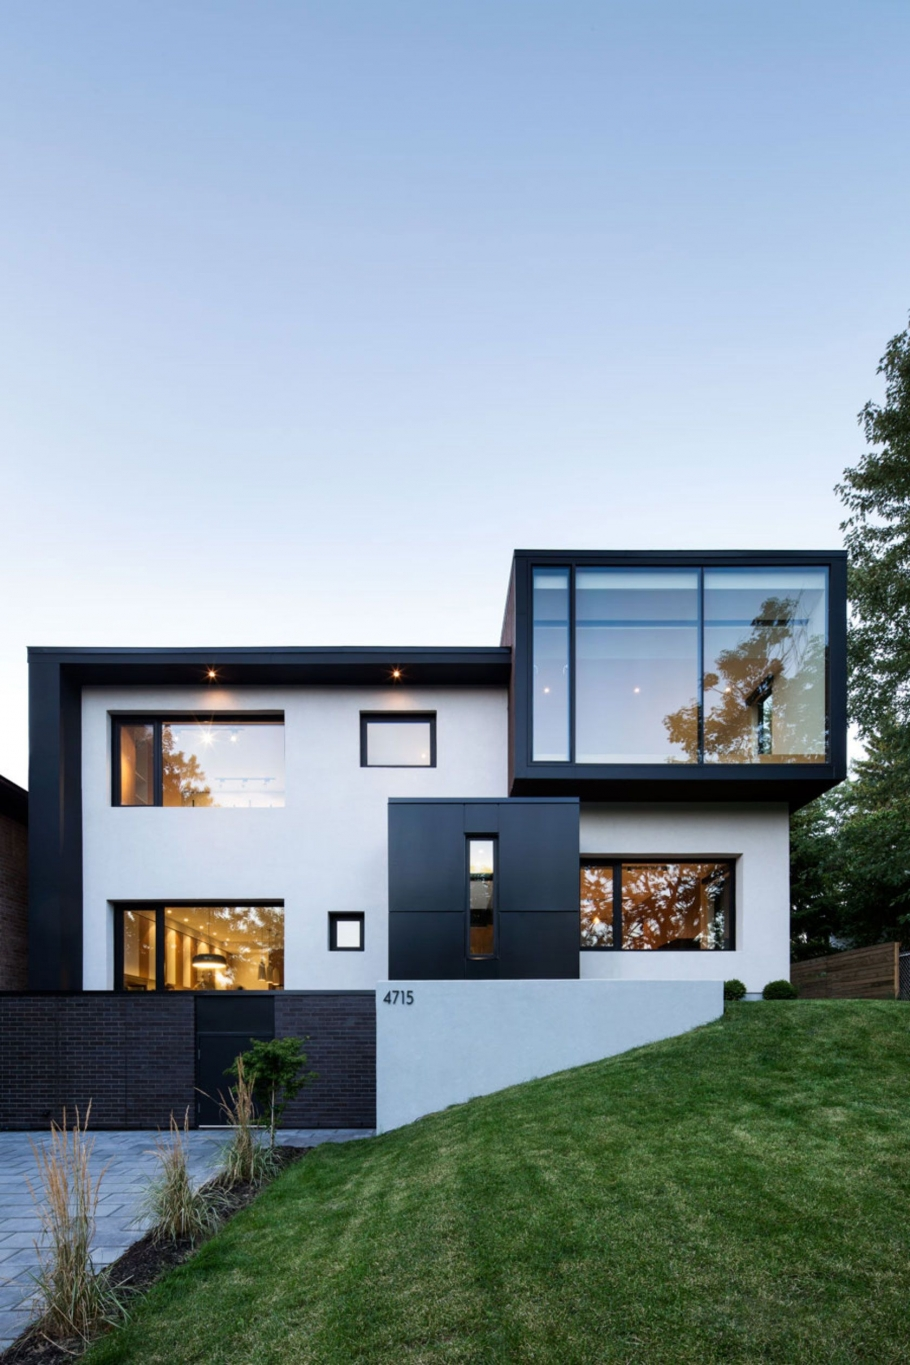 95 Examples Of Amazing Contemporary Flat Roof Design Of A House-9392